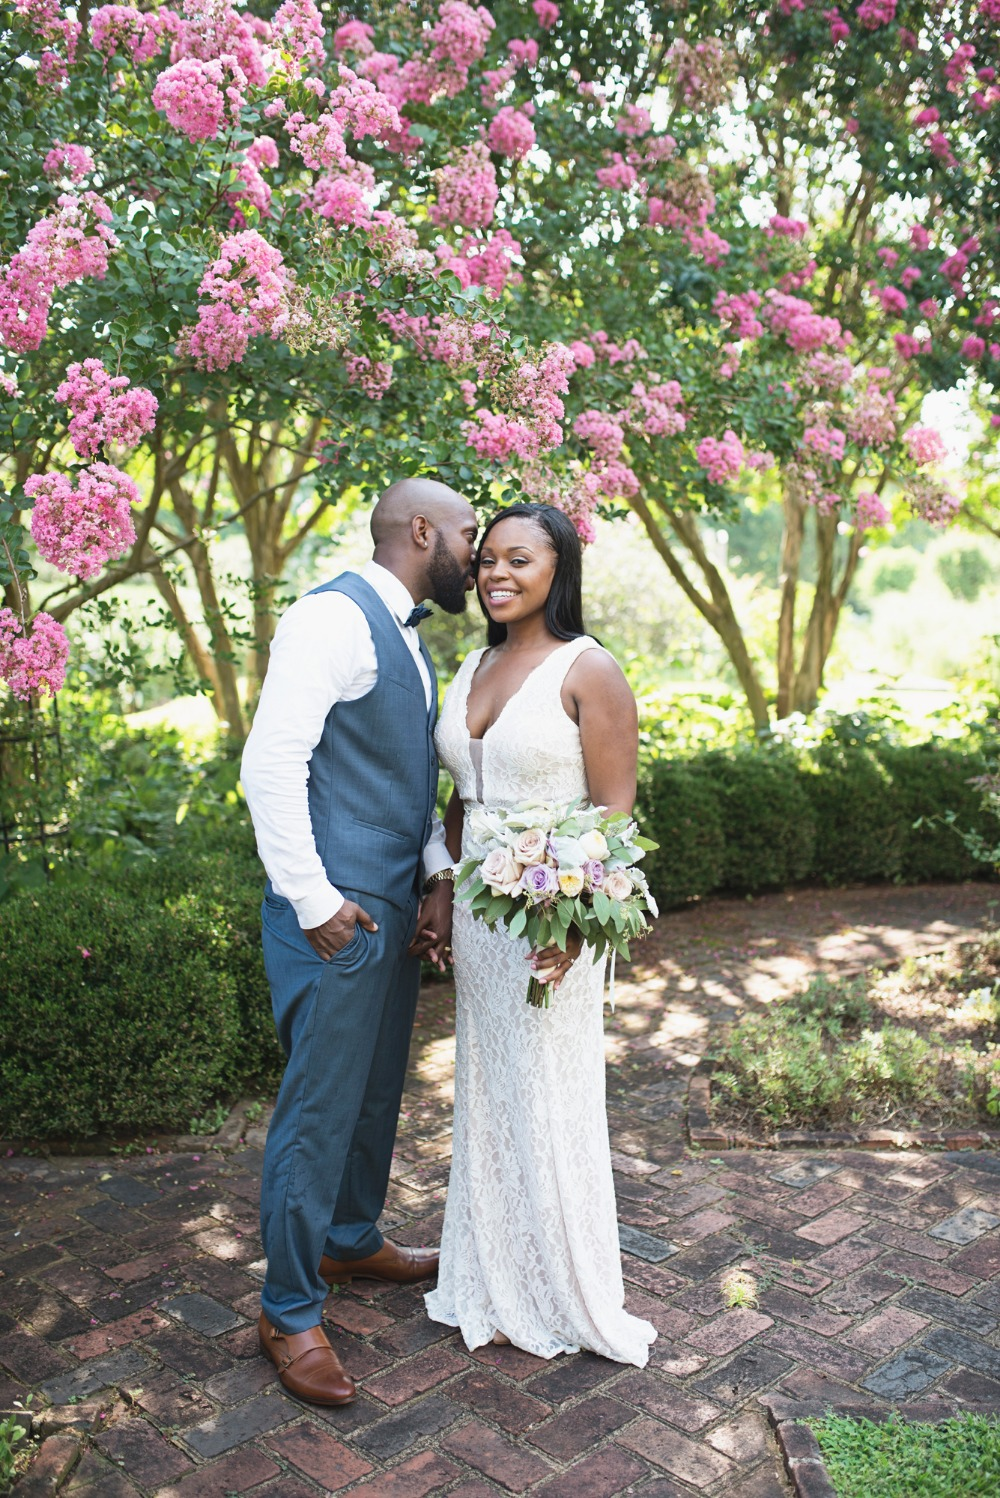 Beautiful garden elopement